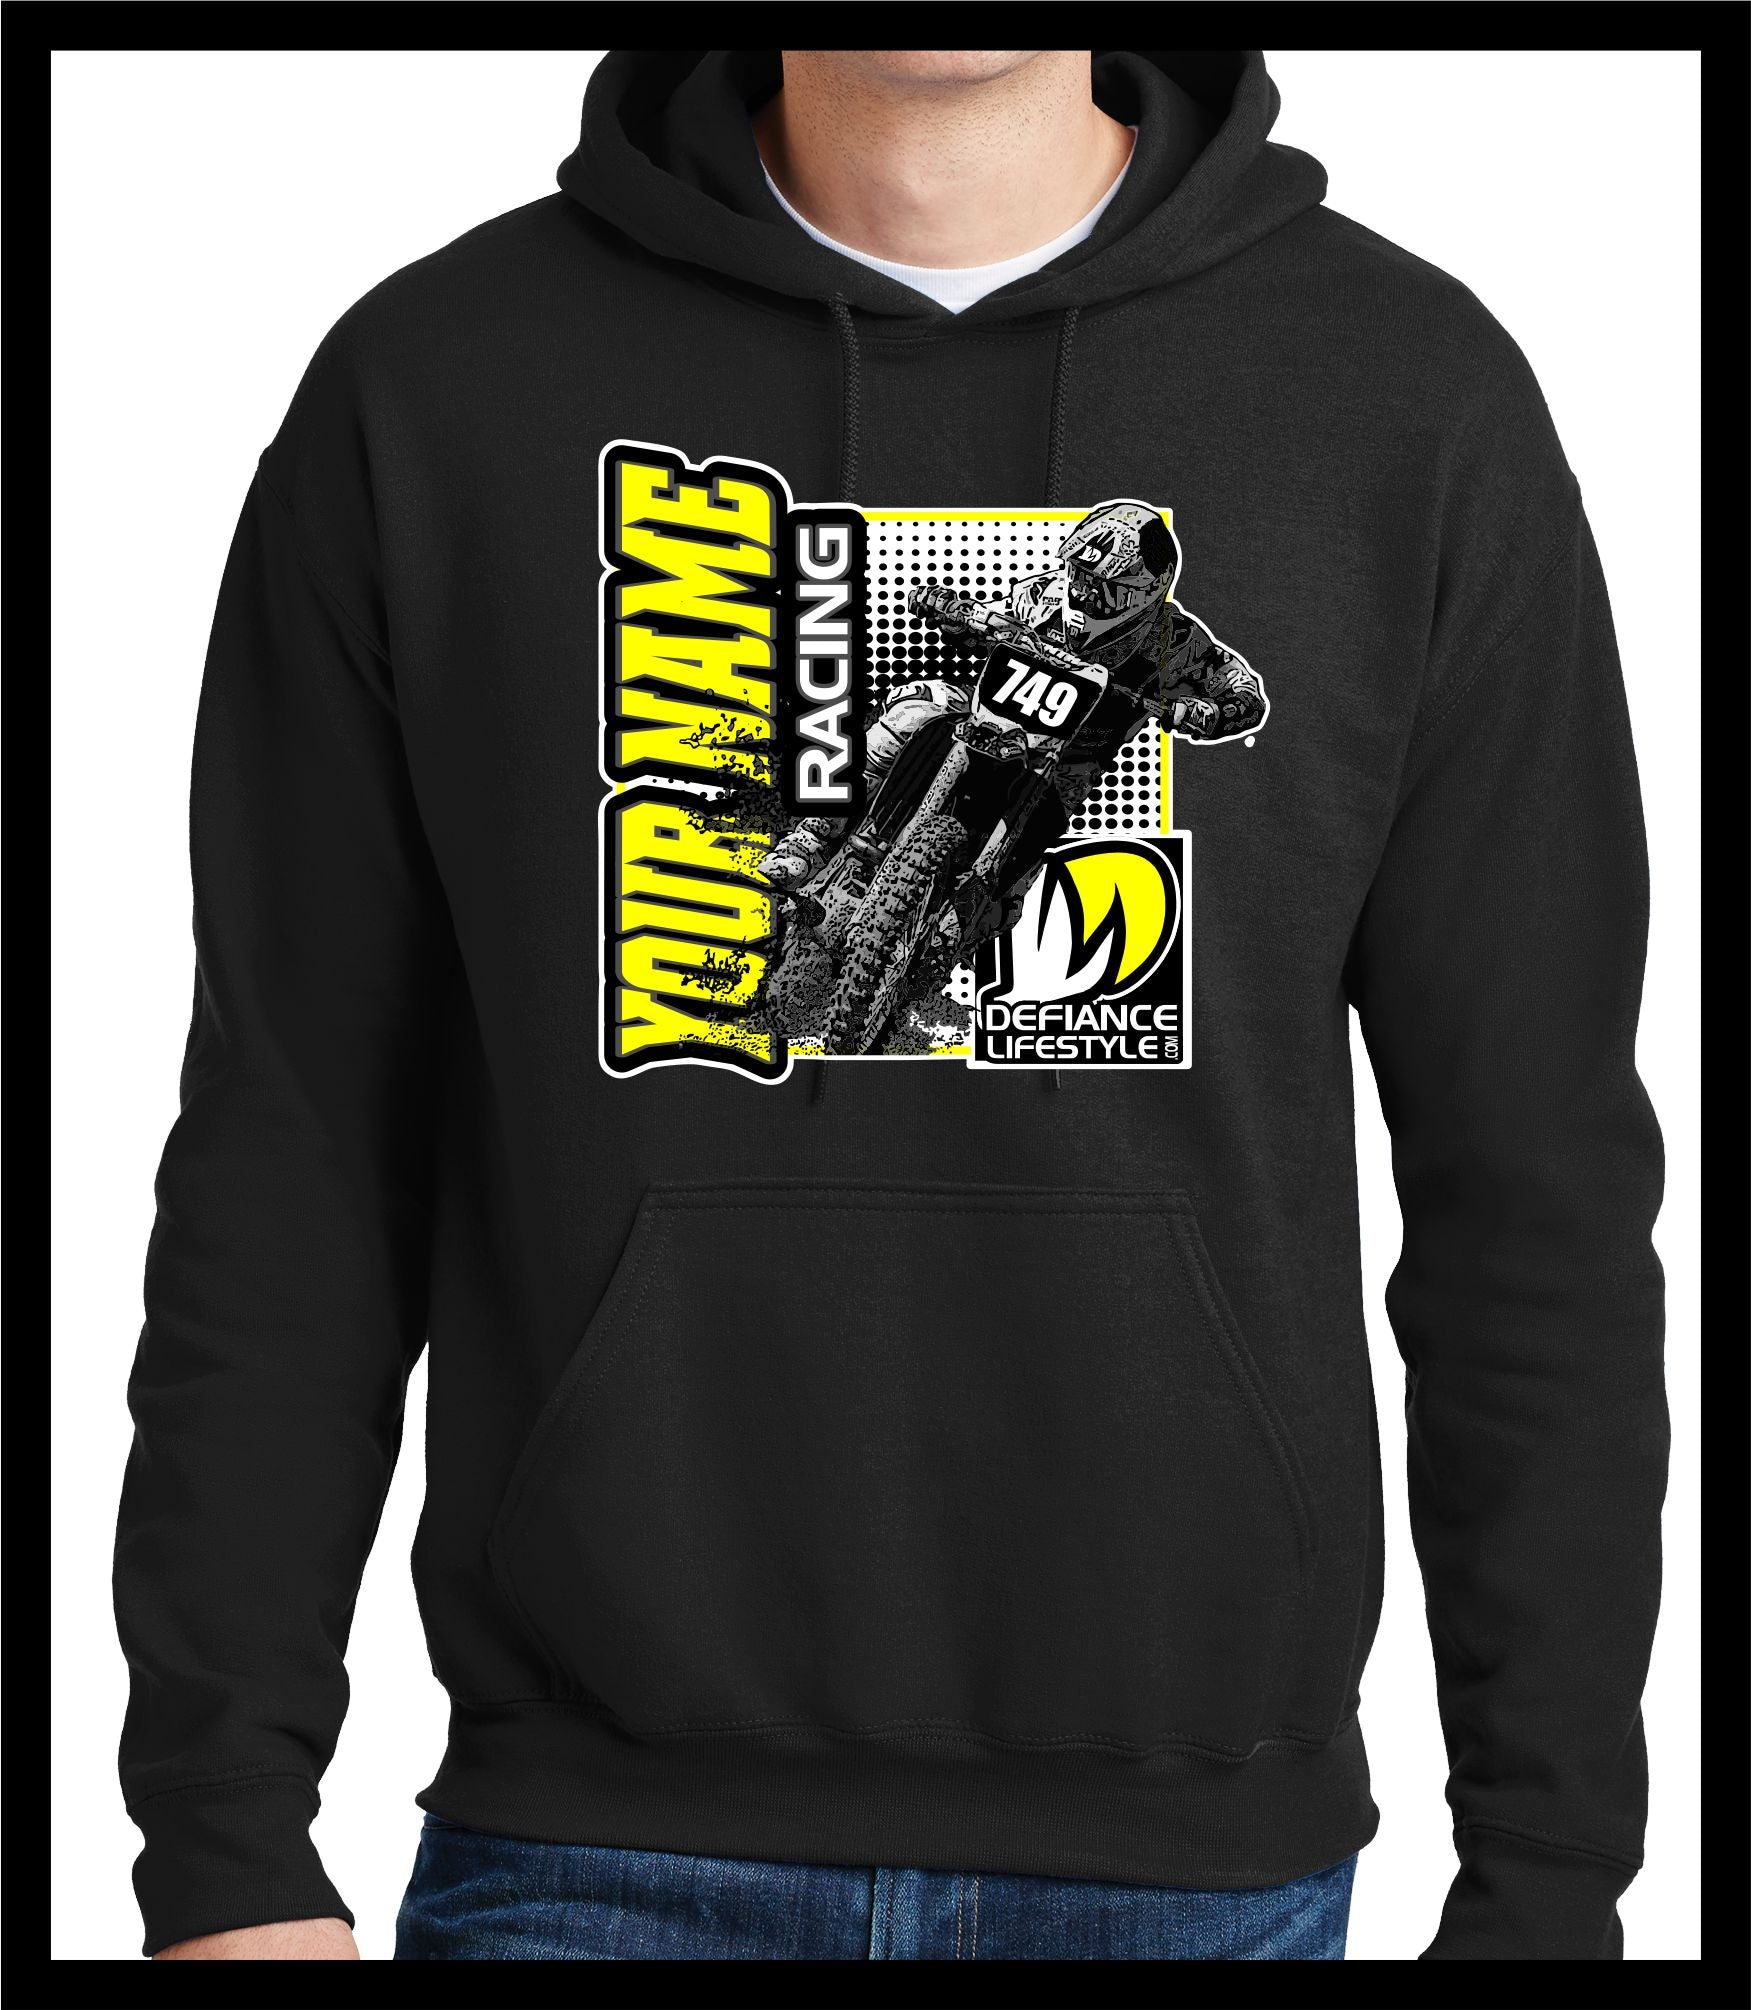 Hard charger Race Sweatshirt - BLACK - Defiance Lifestyle, Race Apparel - Casual to Custom